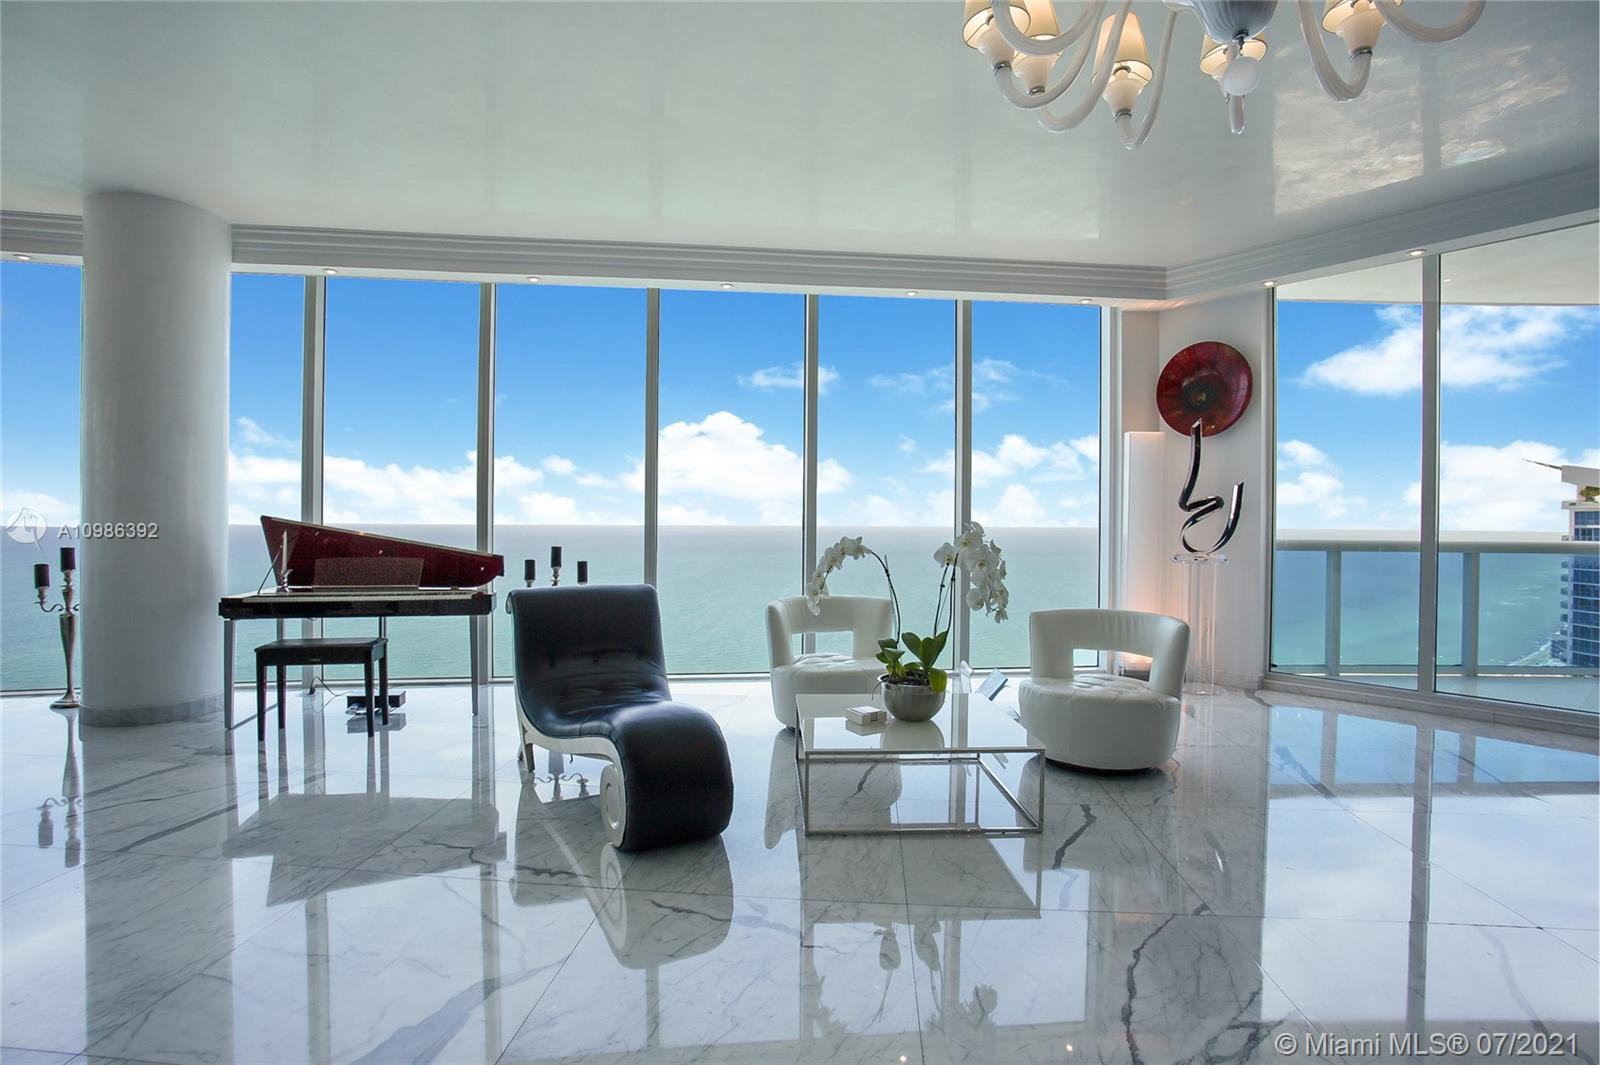 Spectacular Turn Key SKY VILLA! High End Designed Fully Furnished unit! Panoramic Direct SE Ocean Views & Miami Sky Line. 11 Feet ceilings, 5 Bedrooms/ office/ media-family room/ Maid quarter/ Laundry/ Master Suite with His and Hers Bathroom, Steam, Jacuzzi, Mirror/TV. Smart Home, Security Camera, Brand new Bosche AC, Top of the line Kitchen. 2 parking spaces. 5 Star Resort Amenities: State of the Art Fitness Center & SPA, Social Room, Tennis Court, Beach & Pool Service, Restaurant, Security, Valet.